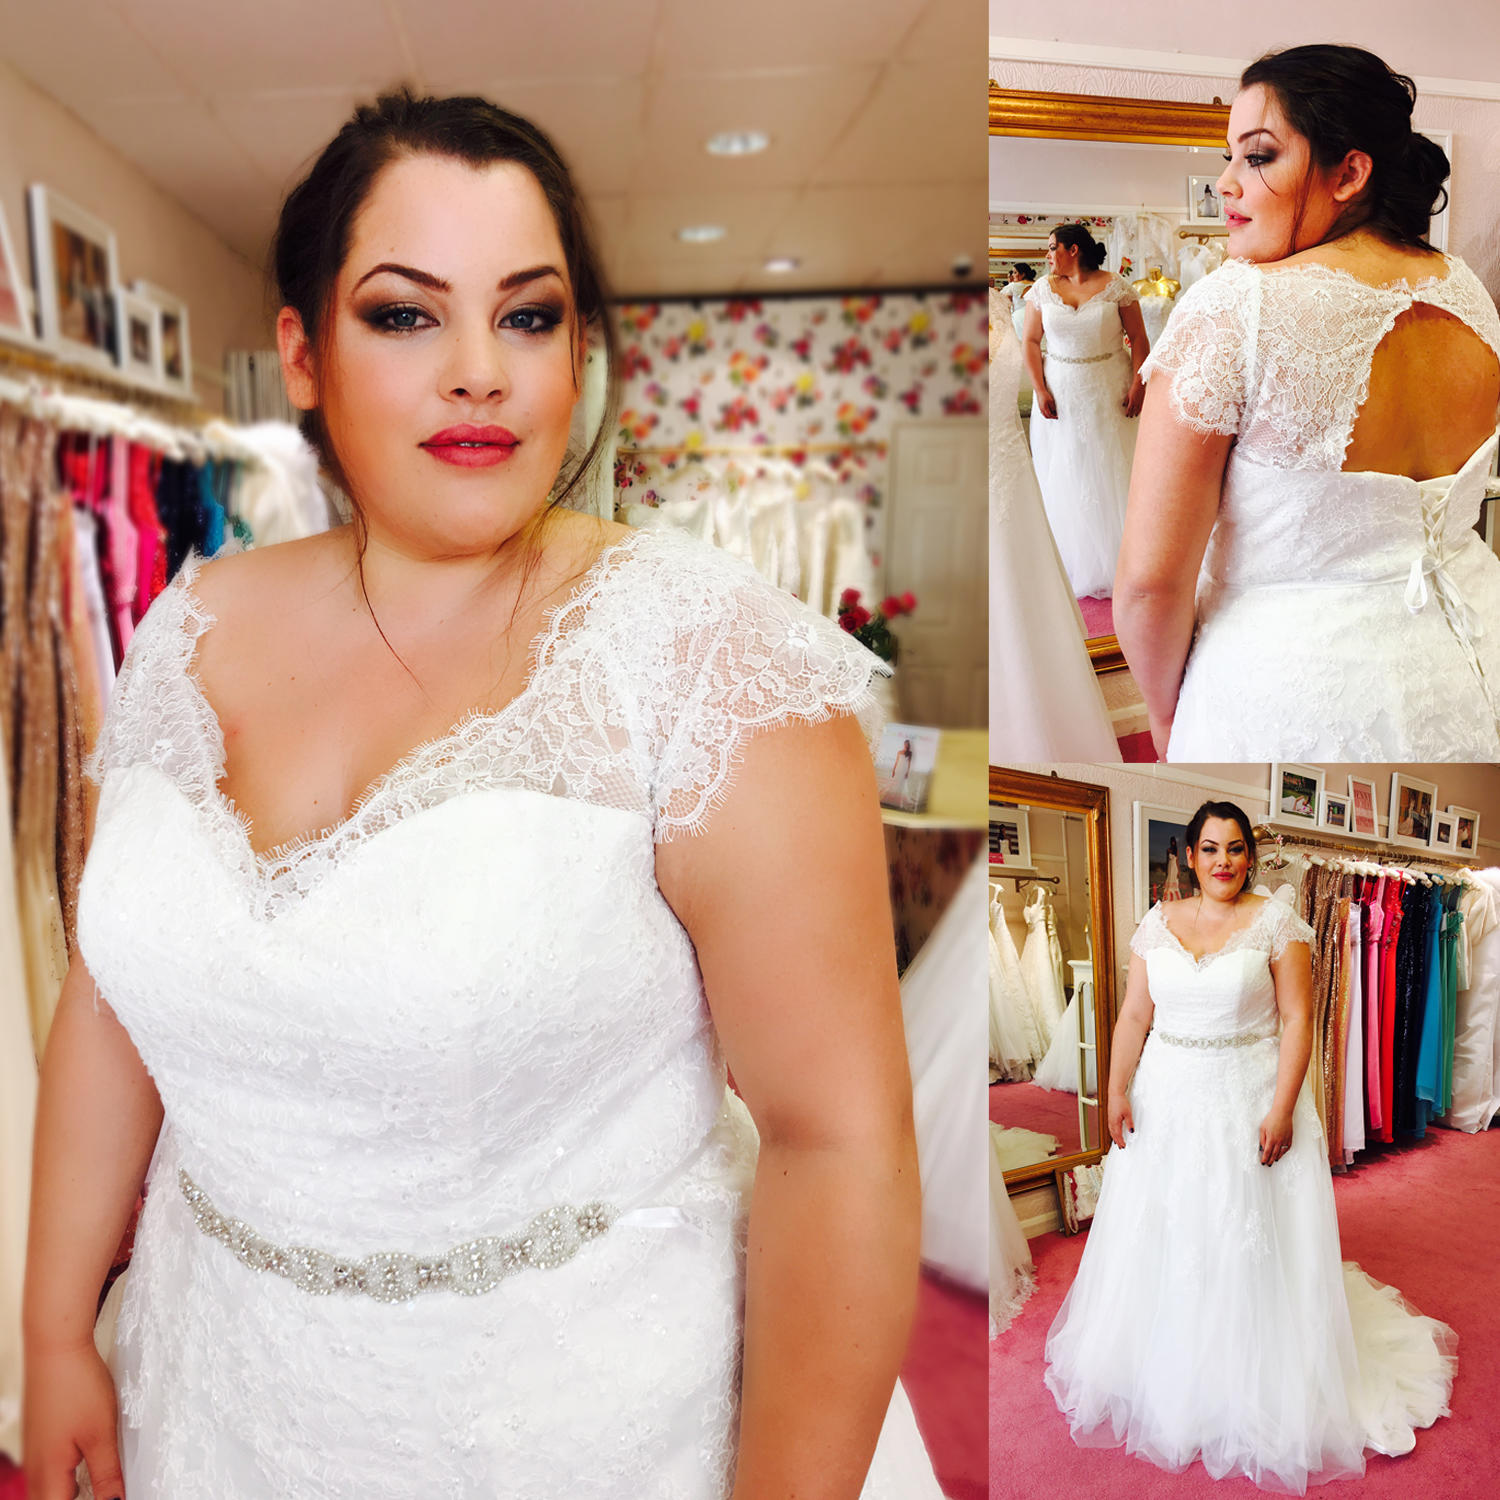 plus size wedding gown with lace sleeve